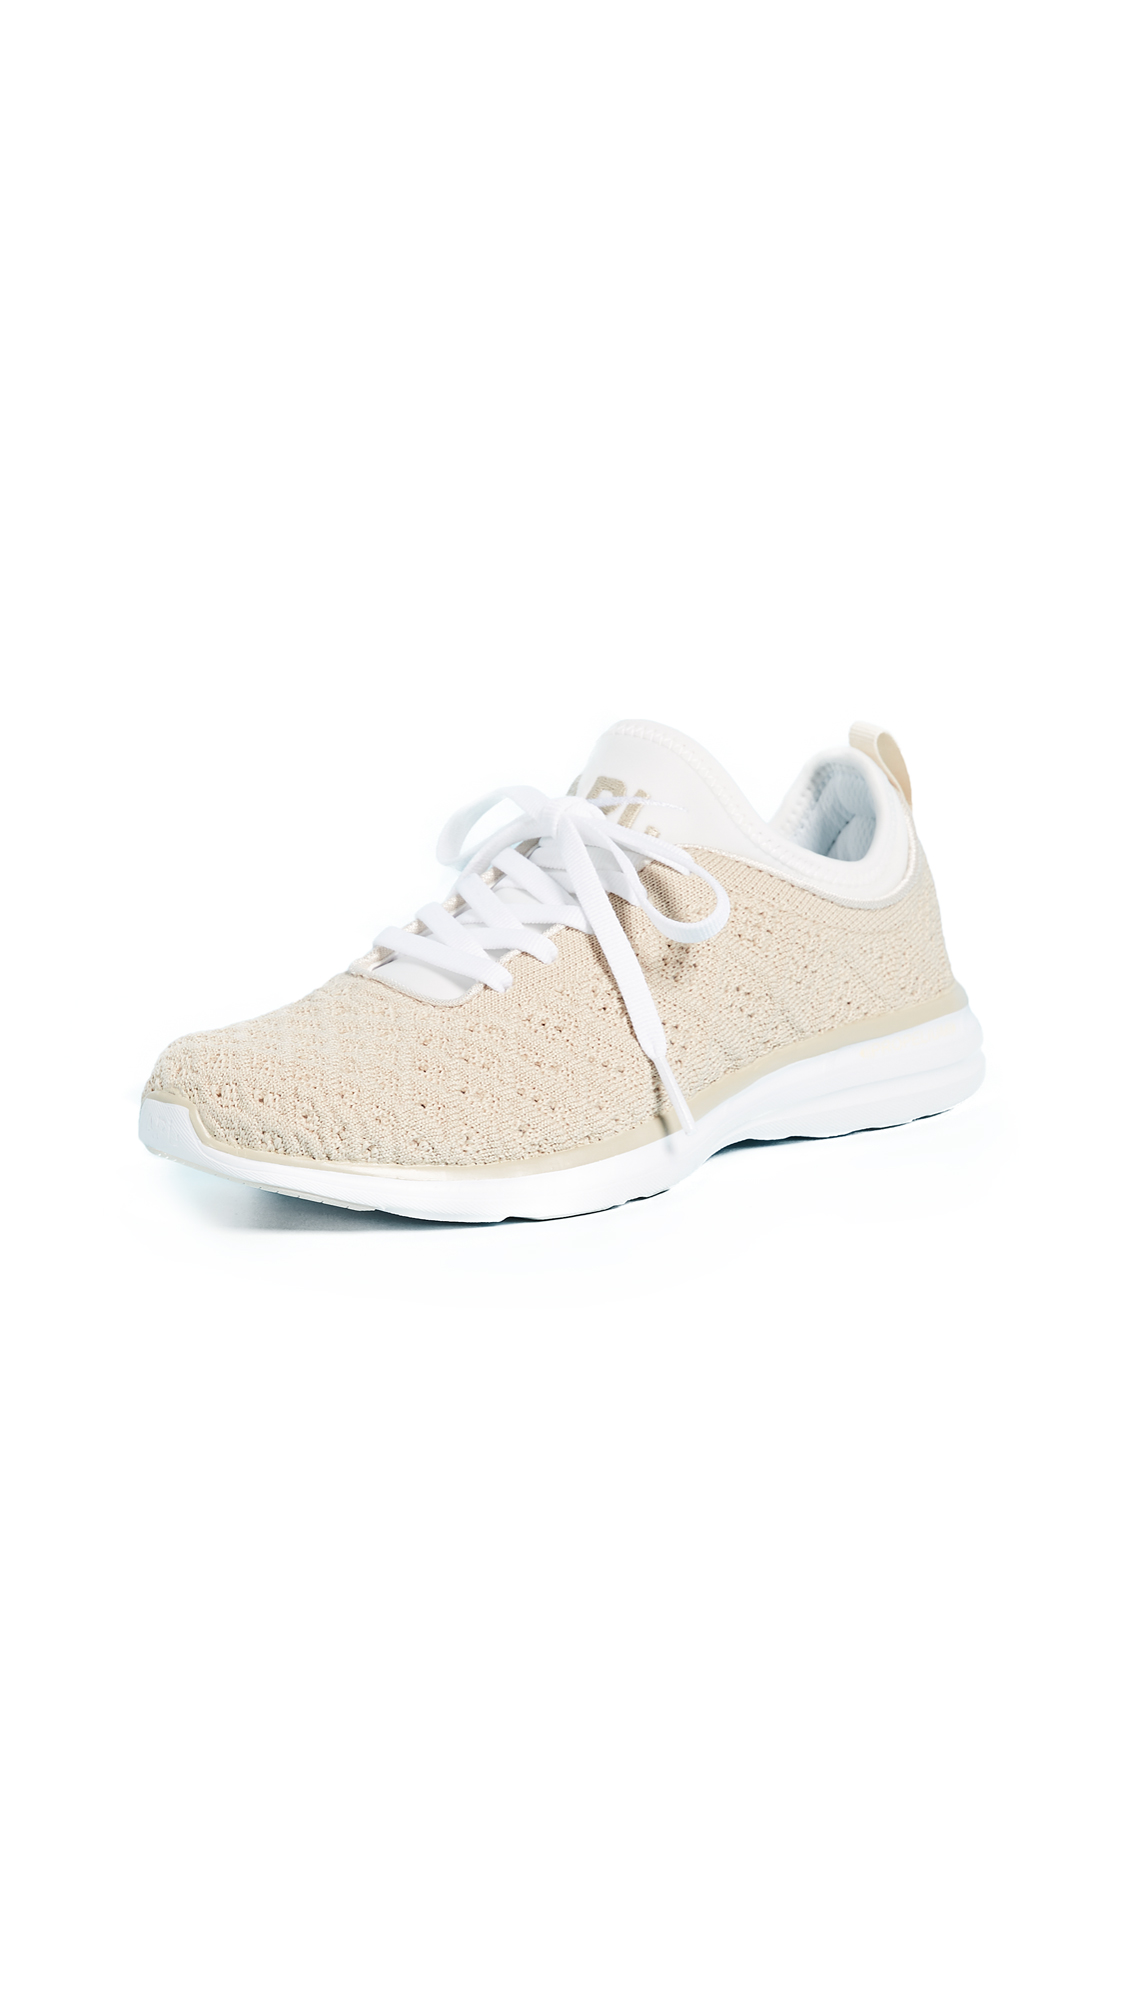 APL: Athletic Propulsion Labs TechLoom Phantom Sneakers - White/Parchment/Cream